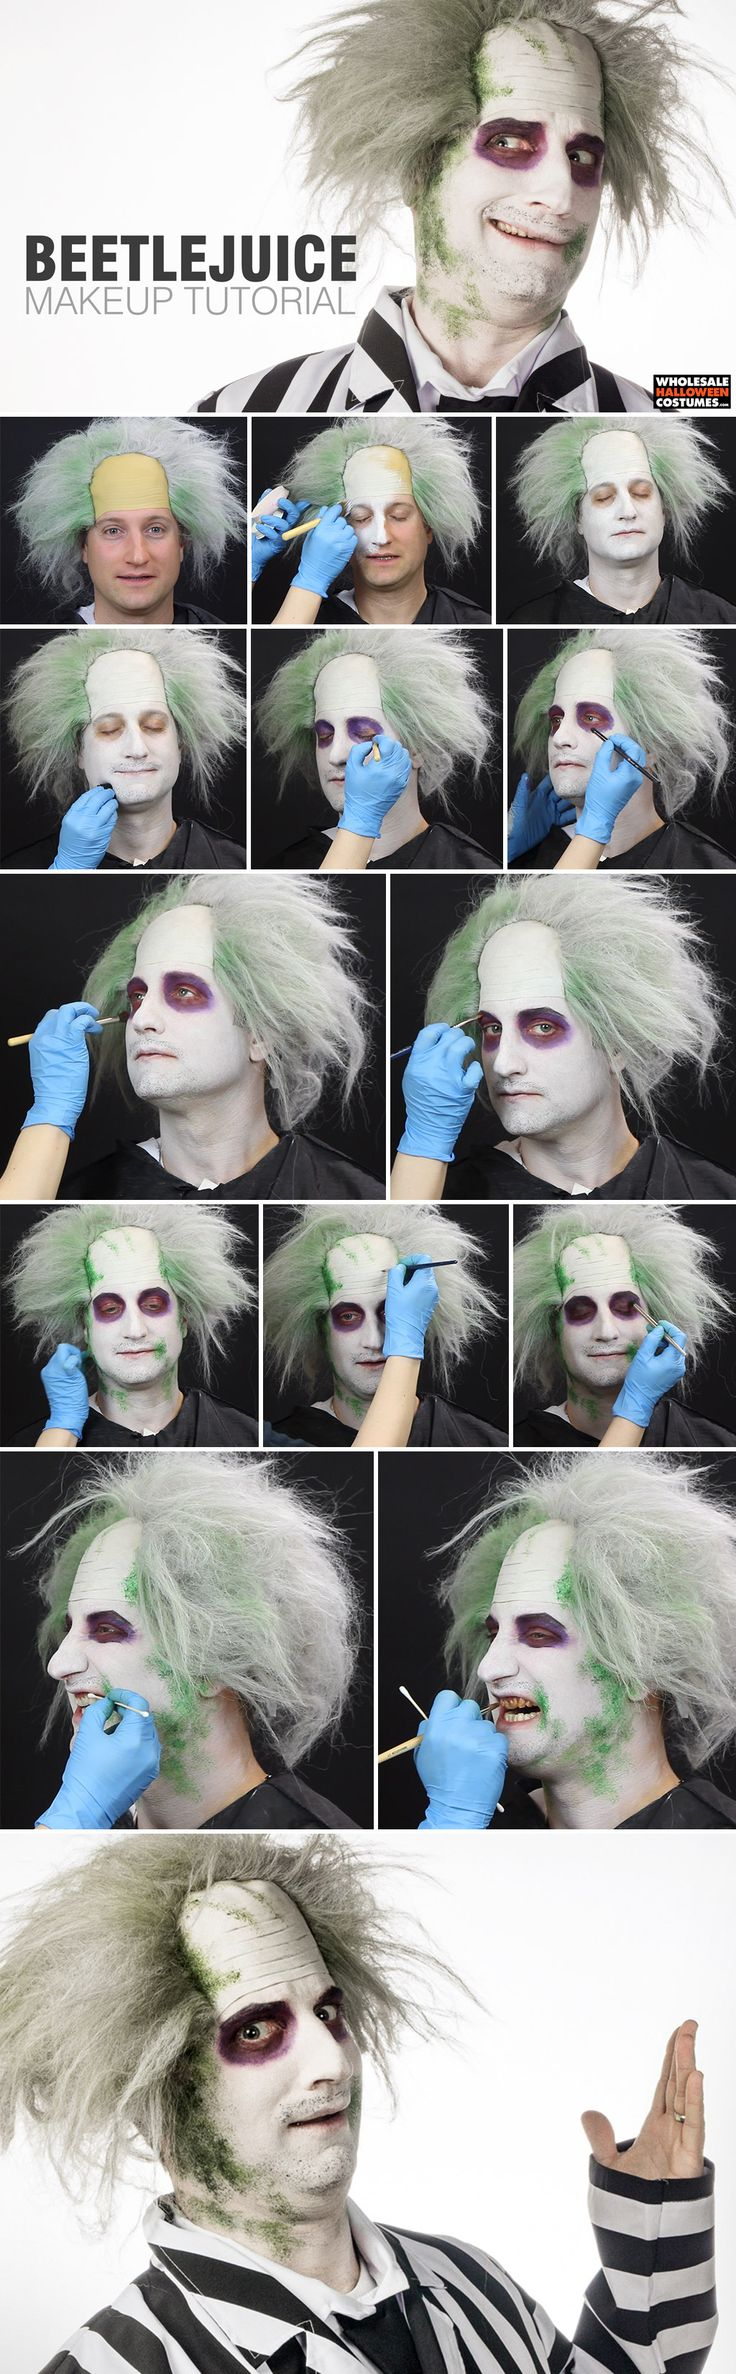 Beetlejuice Makeup Tutorial